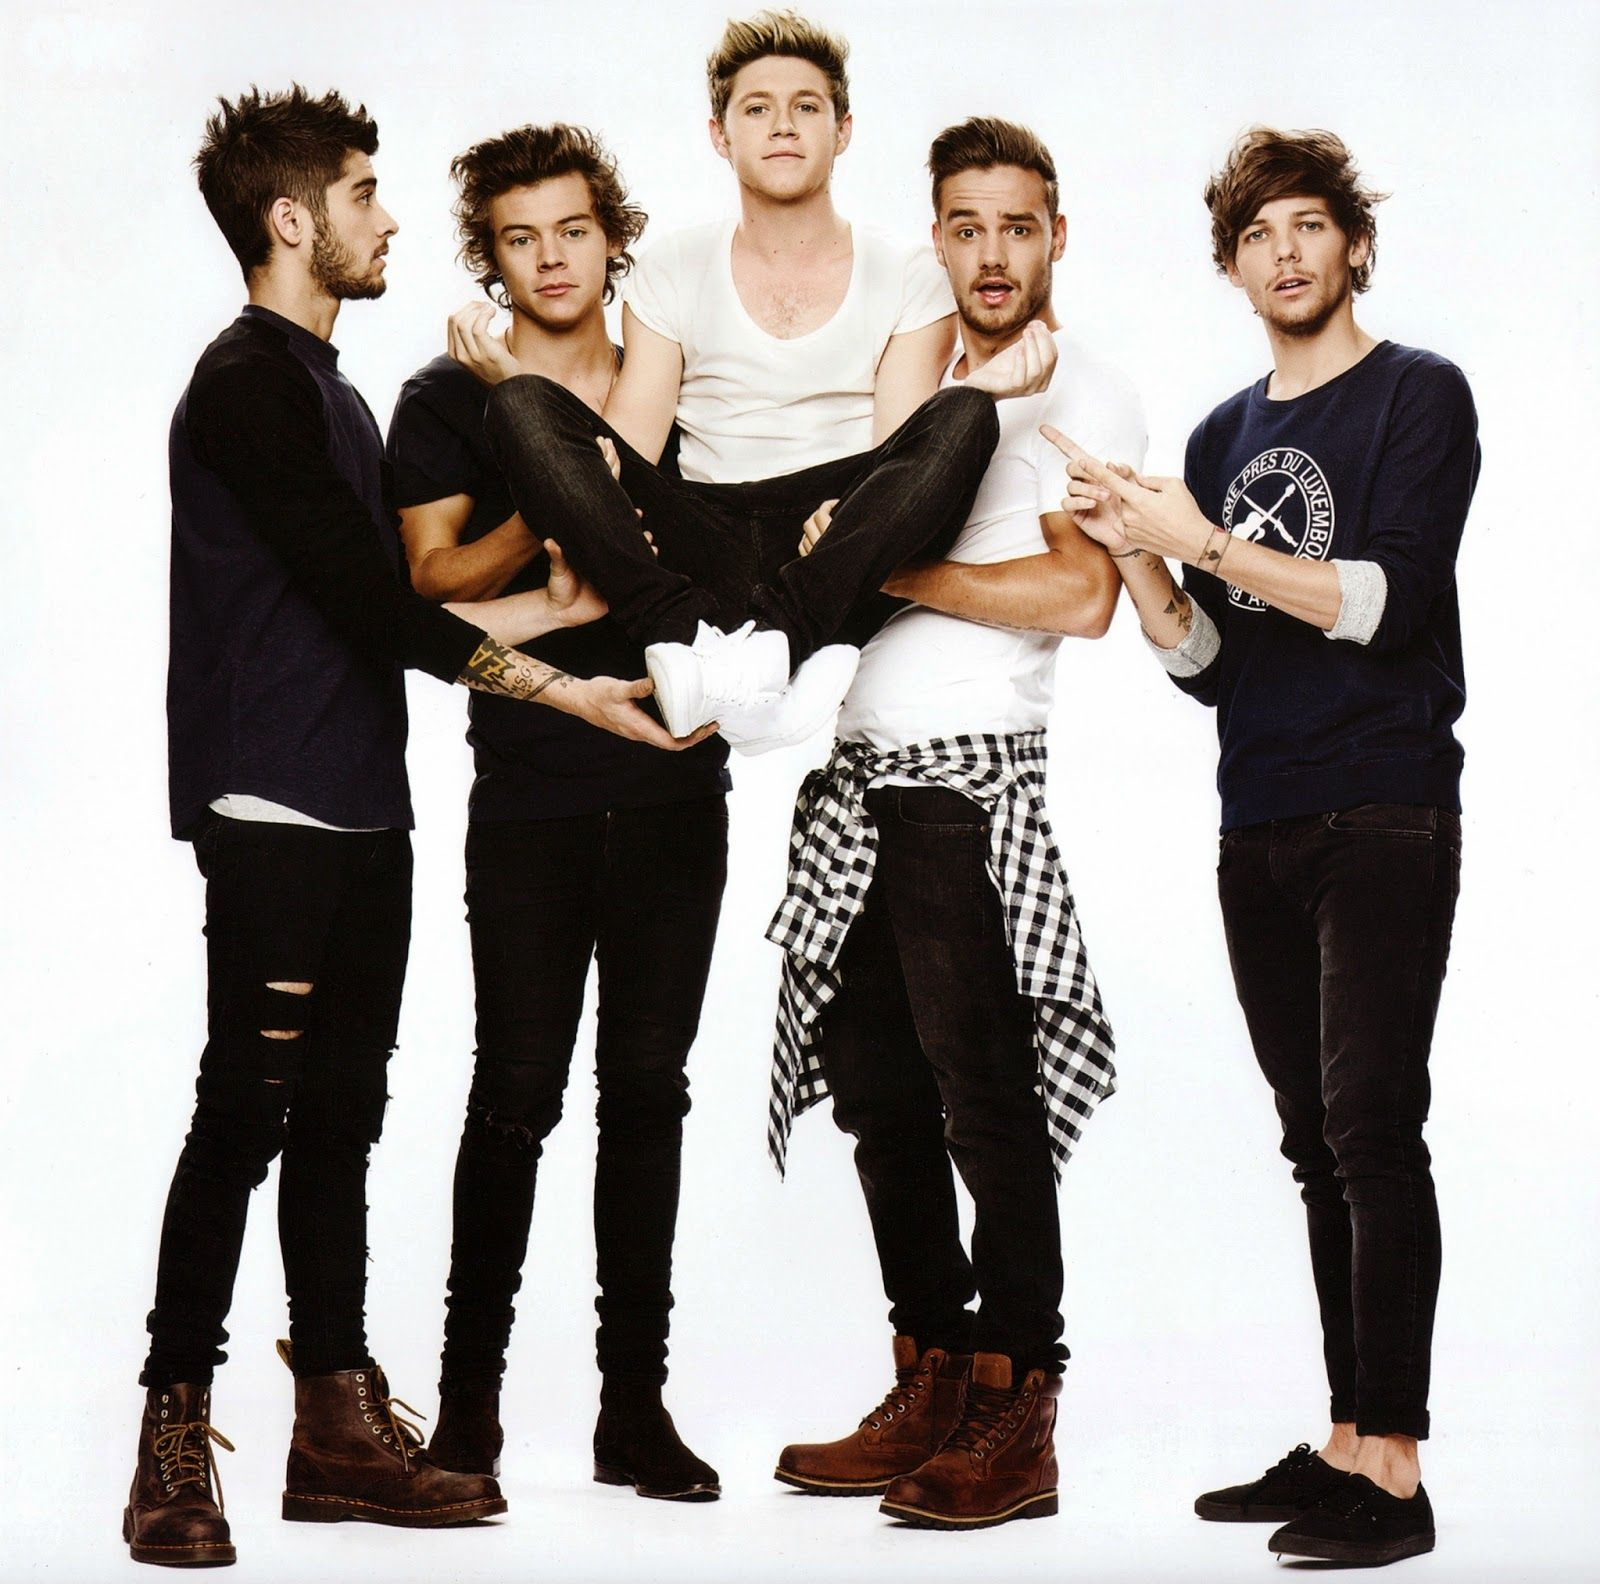 17aa4ad16ed434c74cbcd435443861d2 10 Things You Didn't Know About One Direction